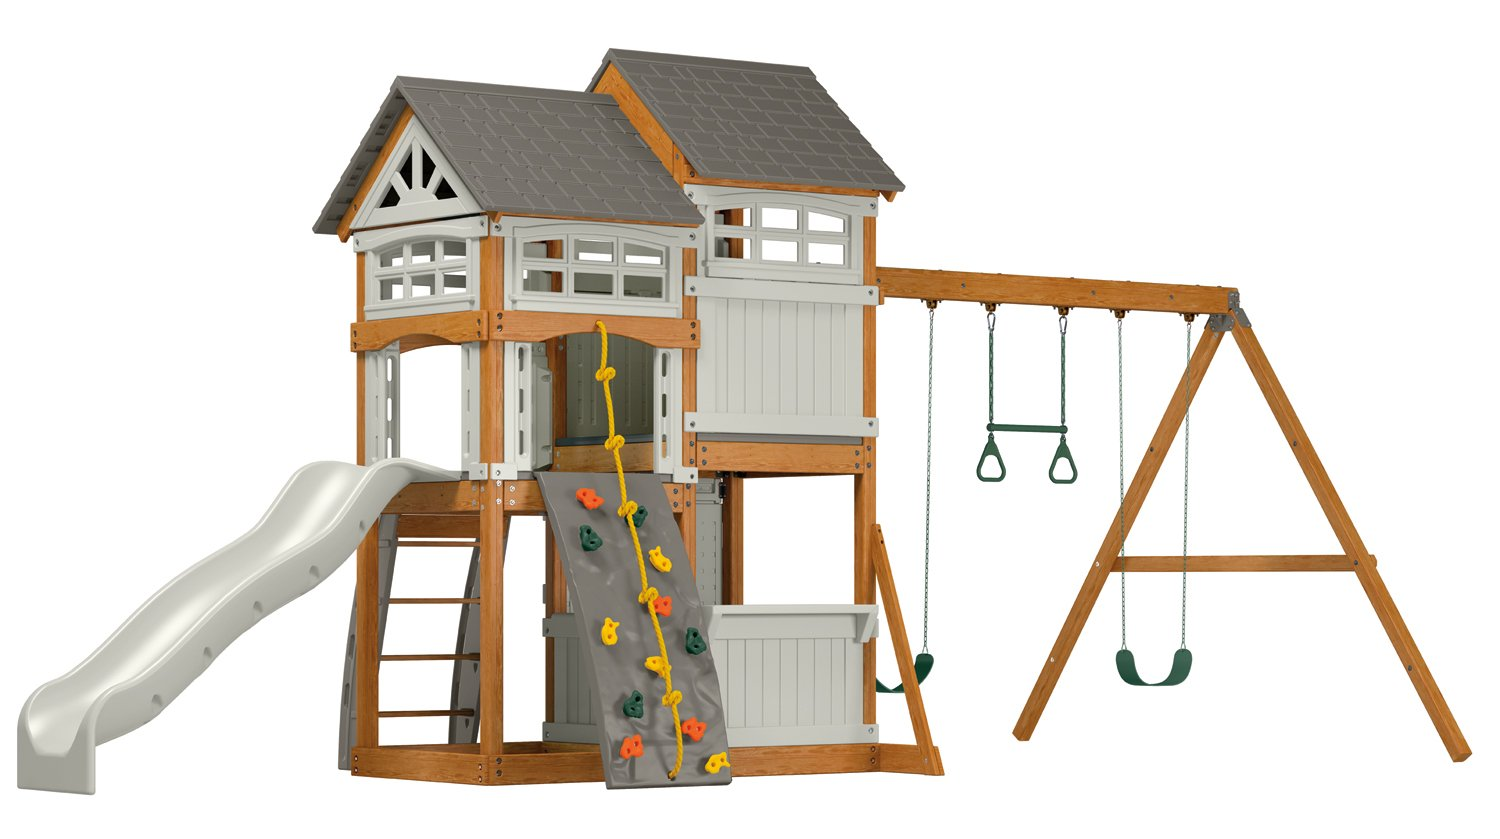 Top 7 Best Swing Sets for Older Kids Reviews in 2020 5